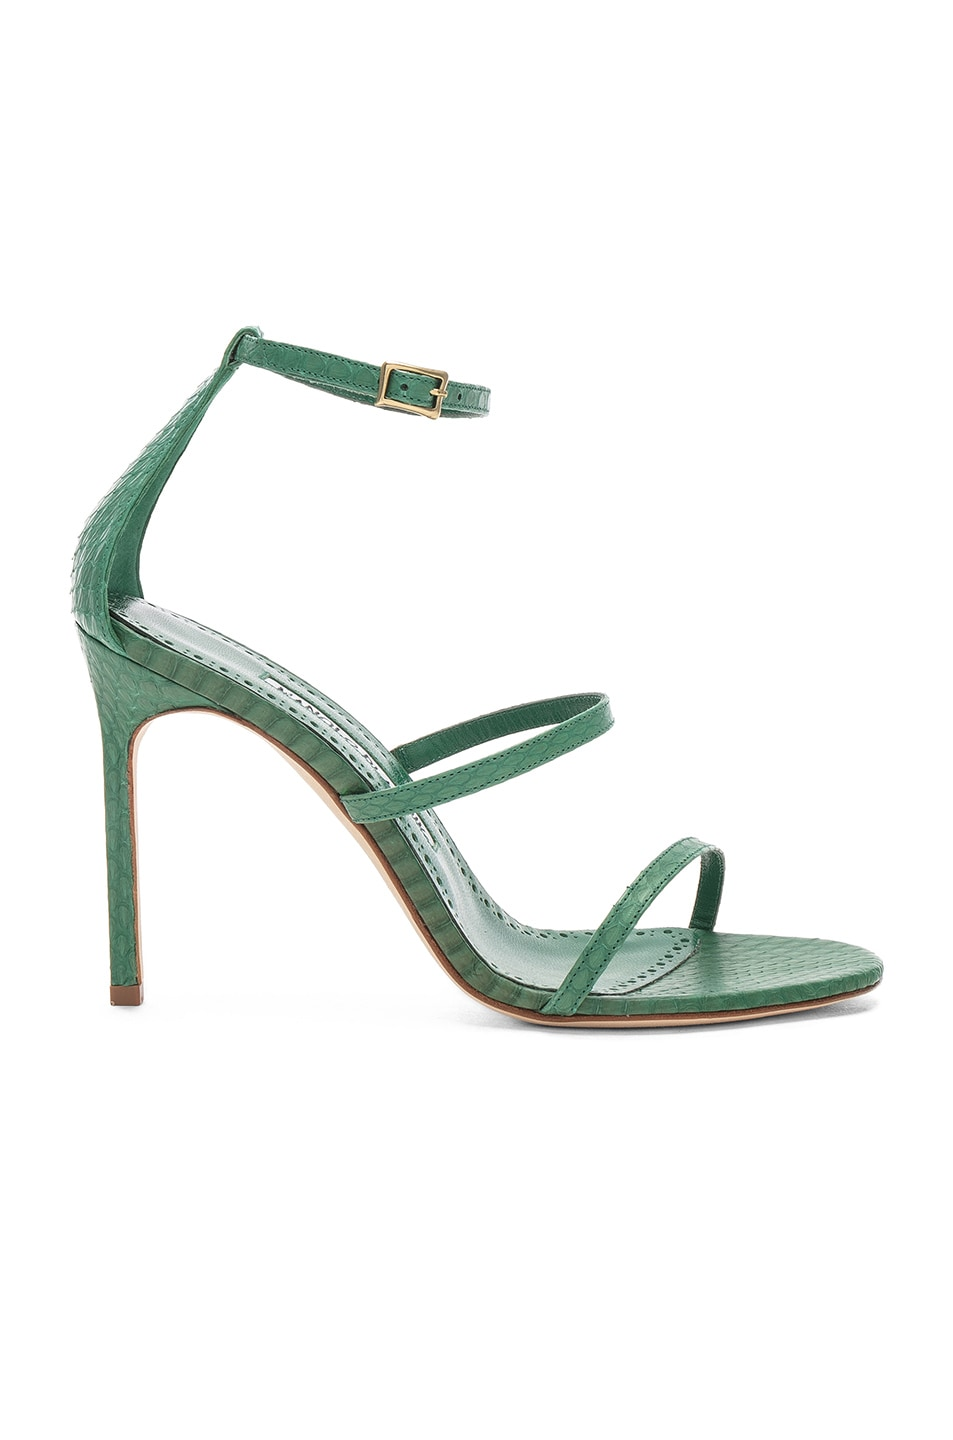 Image 1 of Manolo Blahnik Piona Matte Snake 105 Heel in Green